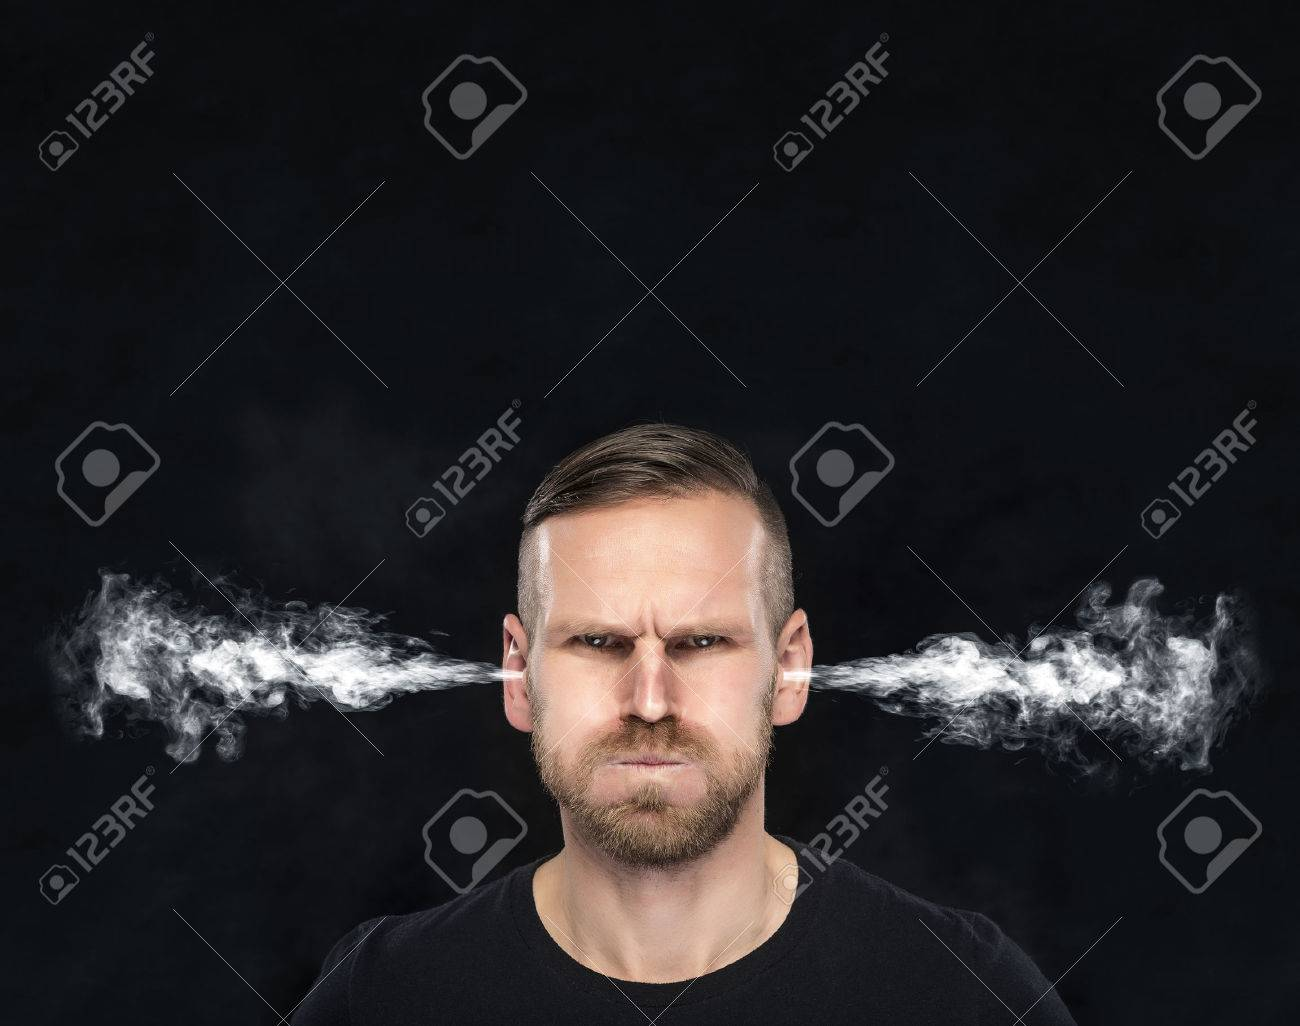 Angry man with smoke or fume coming out from his ears on dark background. - 51573304